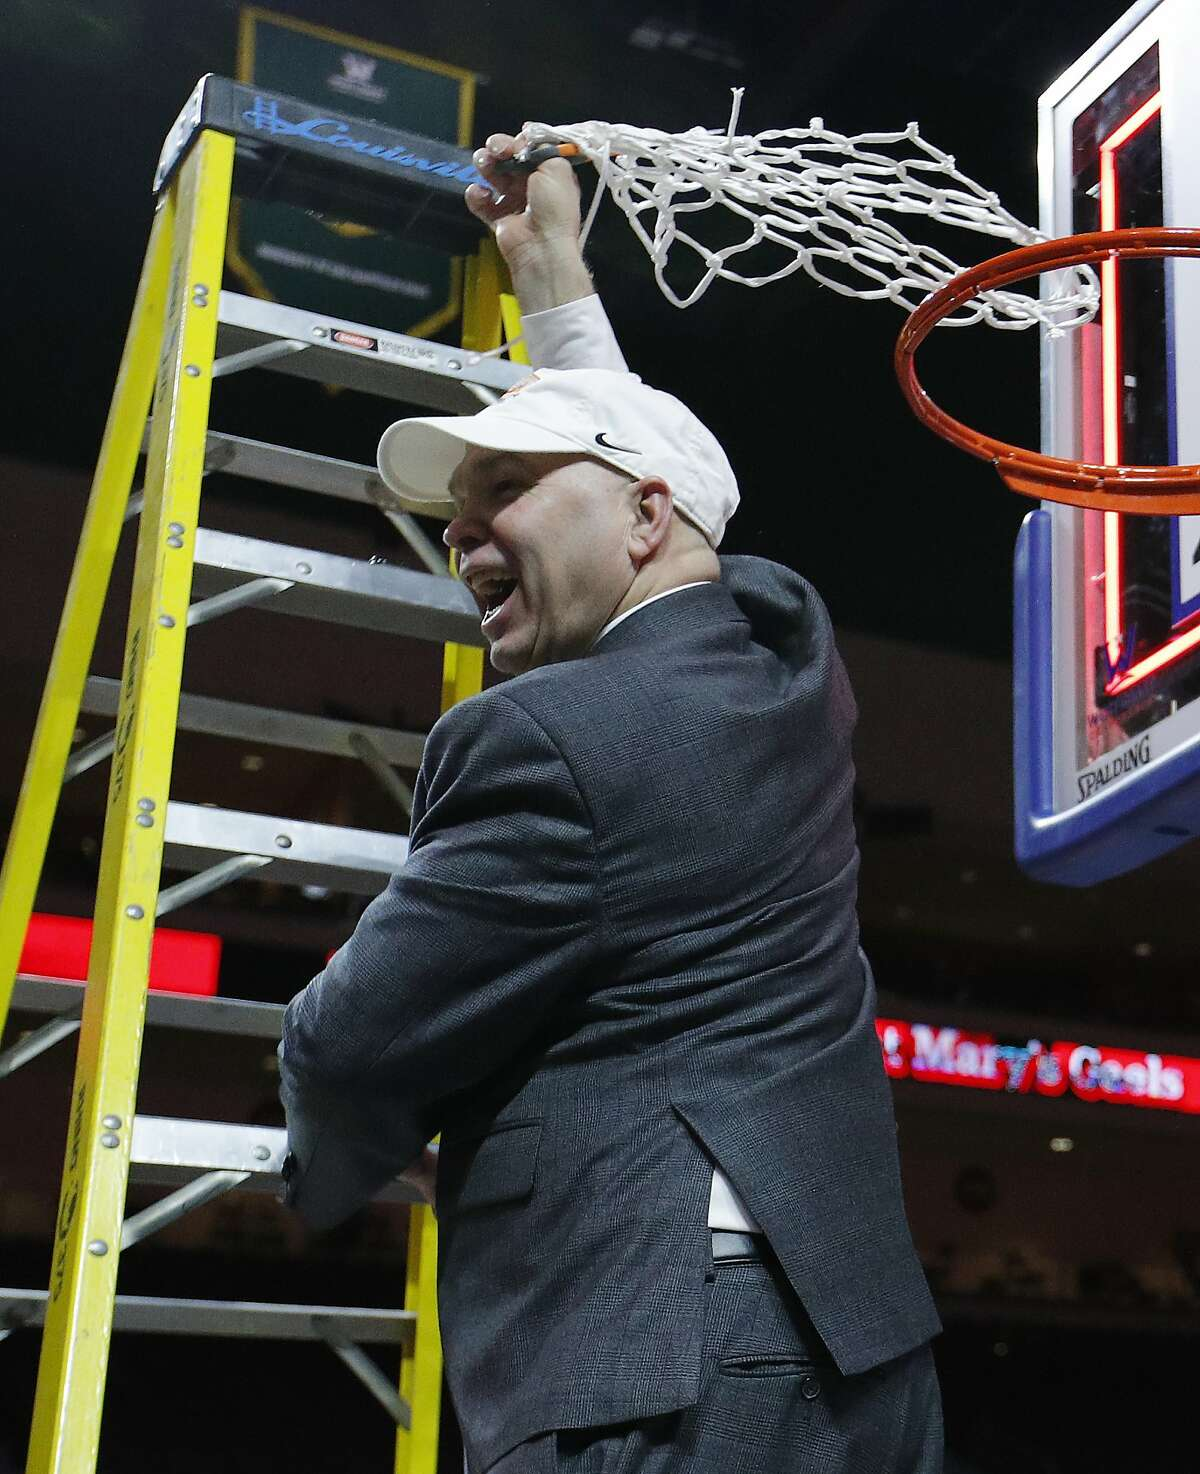 St. Mary's head coach Randy Bennett cuts down a net after his team defeated Gonzaga 60-47 in an NCAA college basketball game for the West Coast Conference men's tournament title, Tuesday, March 12, 2019, in Las Vegas. (AP Photo/John Locher)